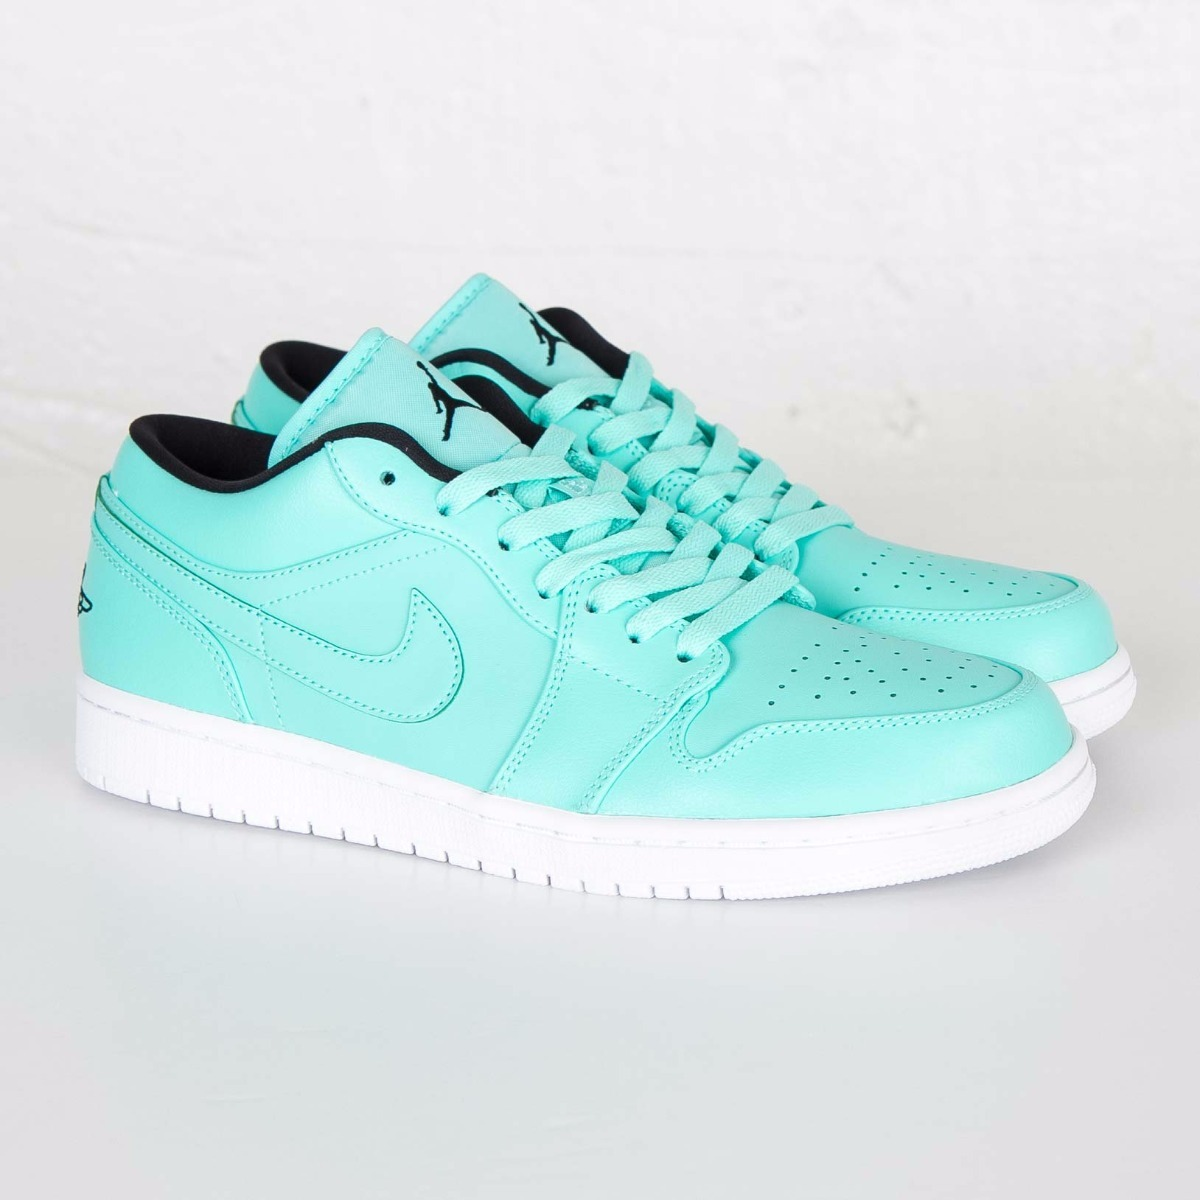 e1f1c8e96165 zapatillas air jordan 1 low tiffany 9.5us original basquet. Cargando zoom.